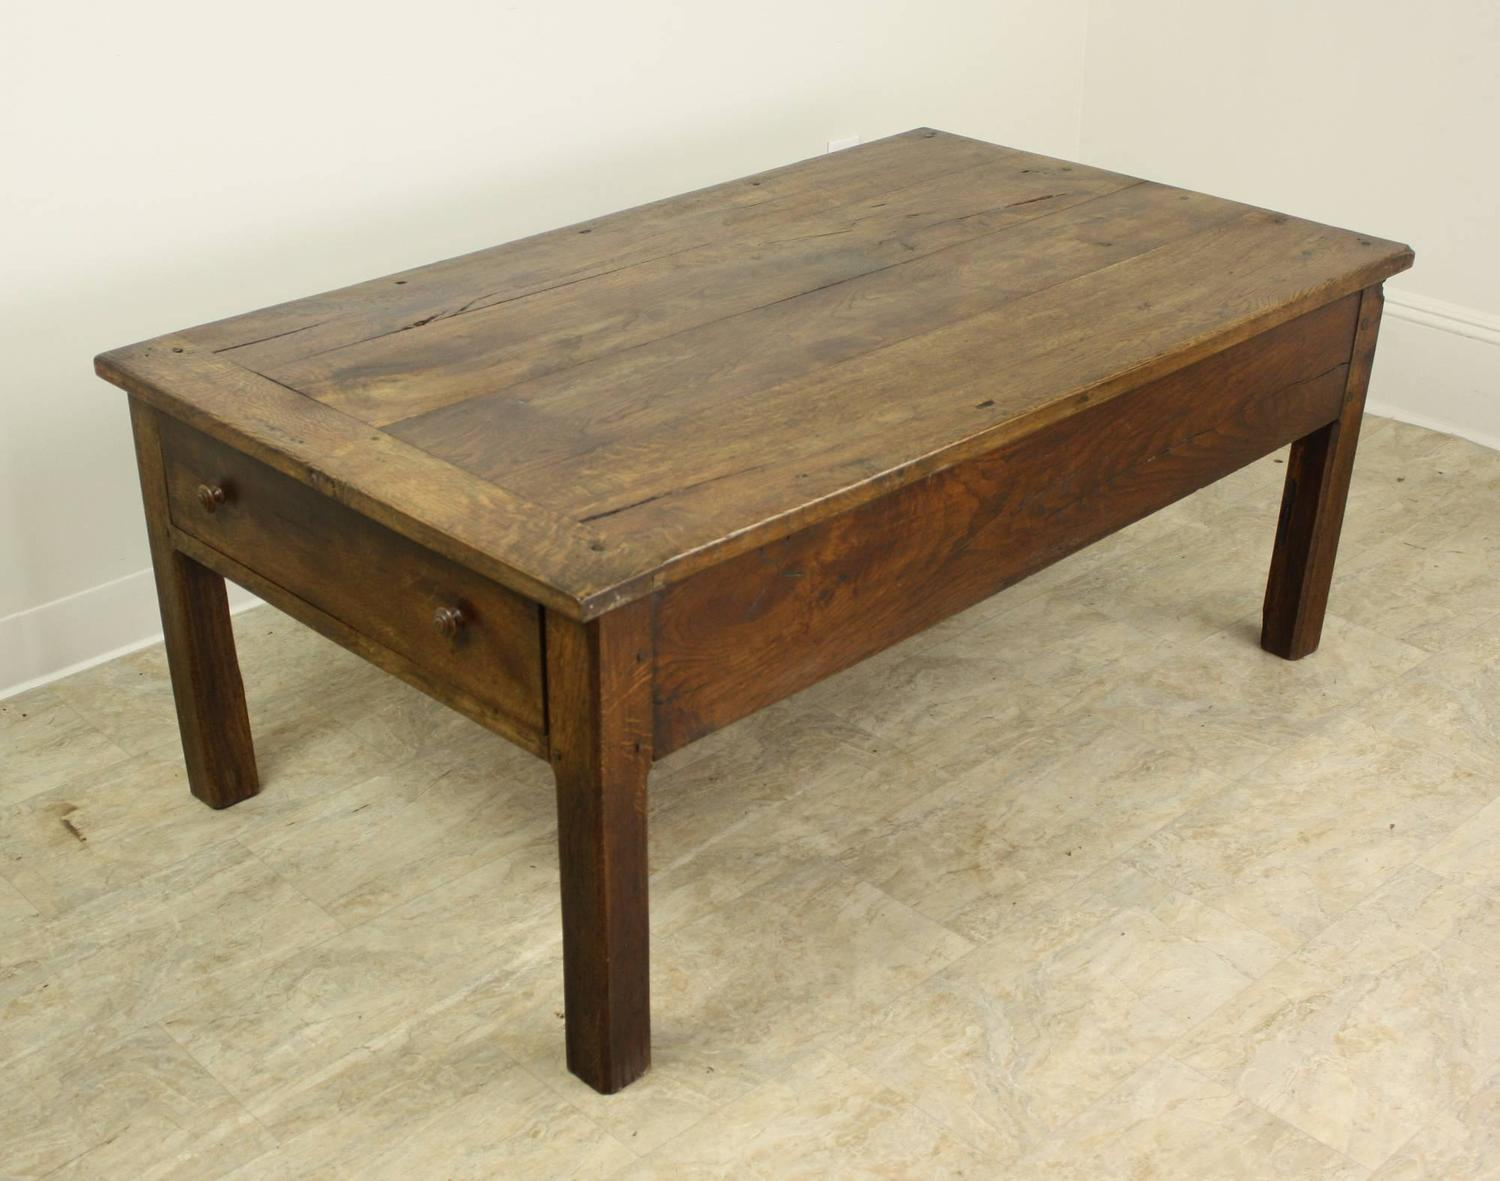 Country Coffee Tables Cross Country Coffee Table Wine Country Coffee Table At 1stdibs Bm629